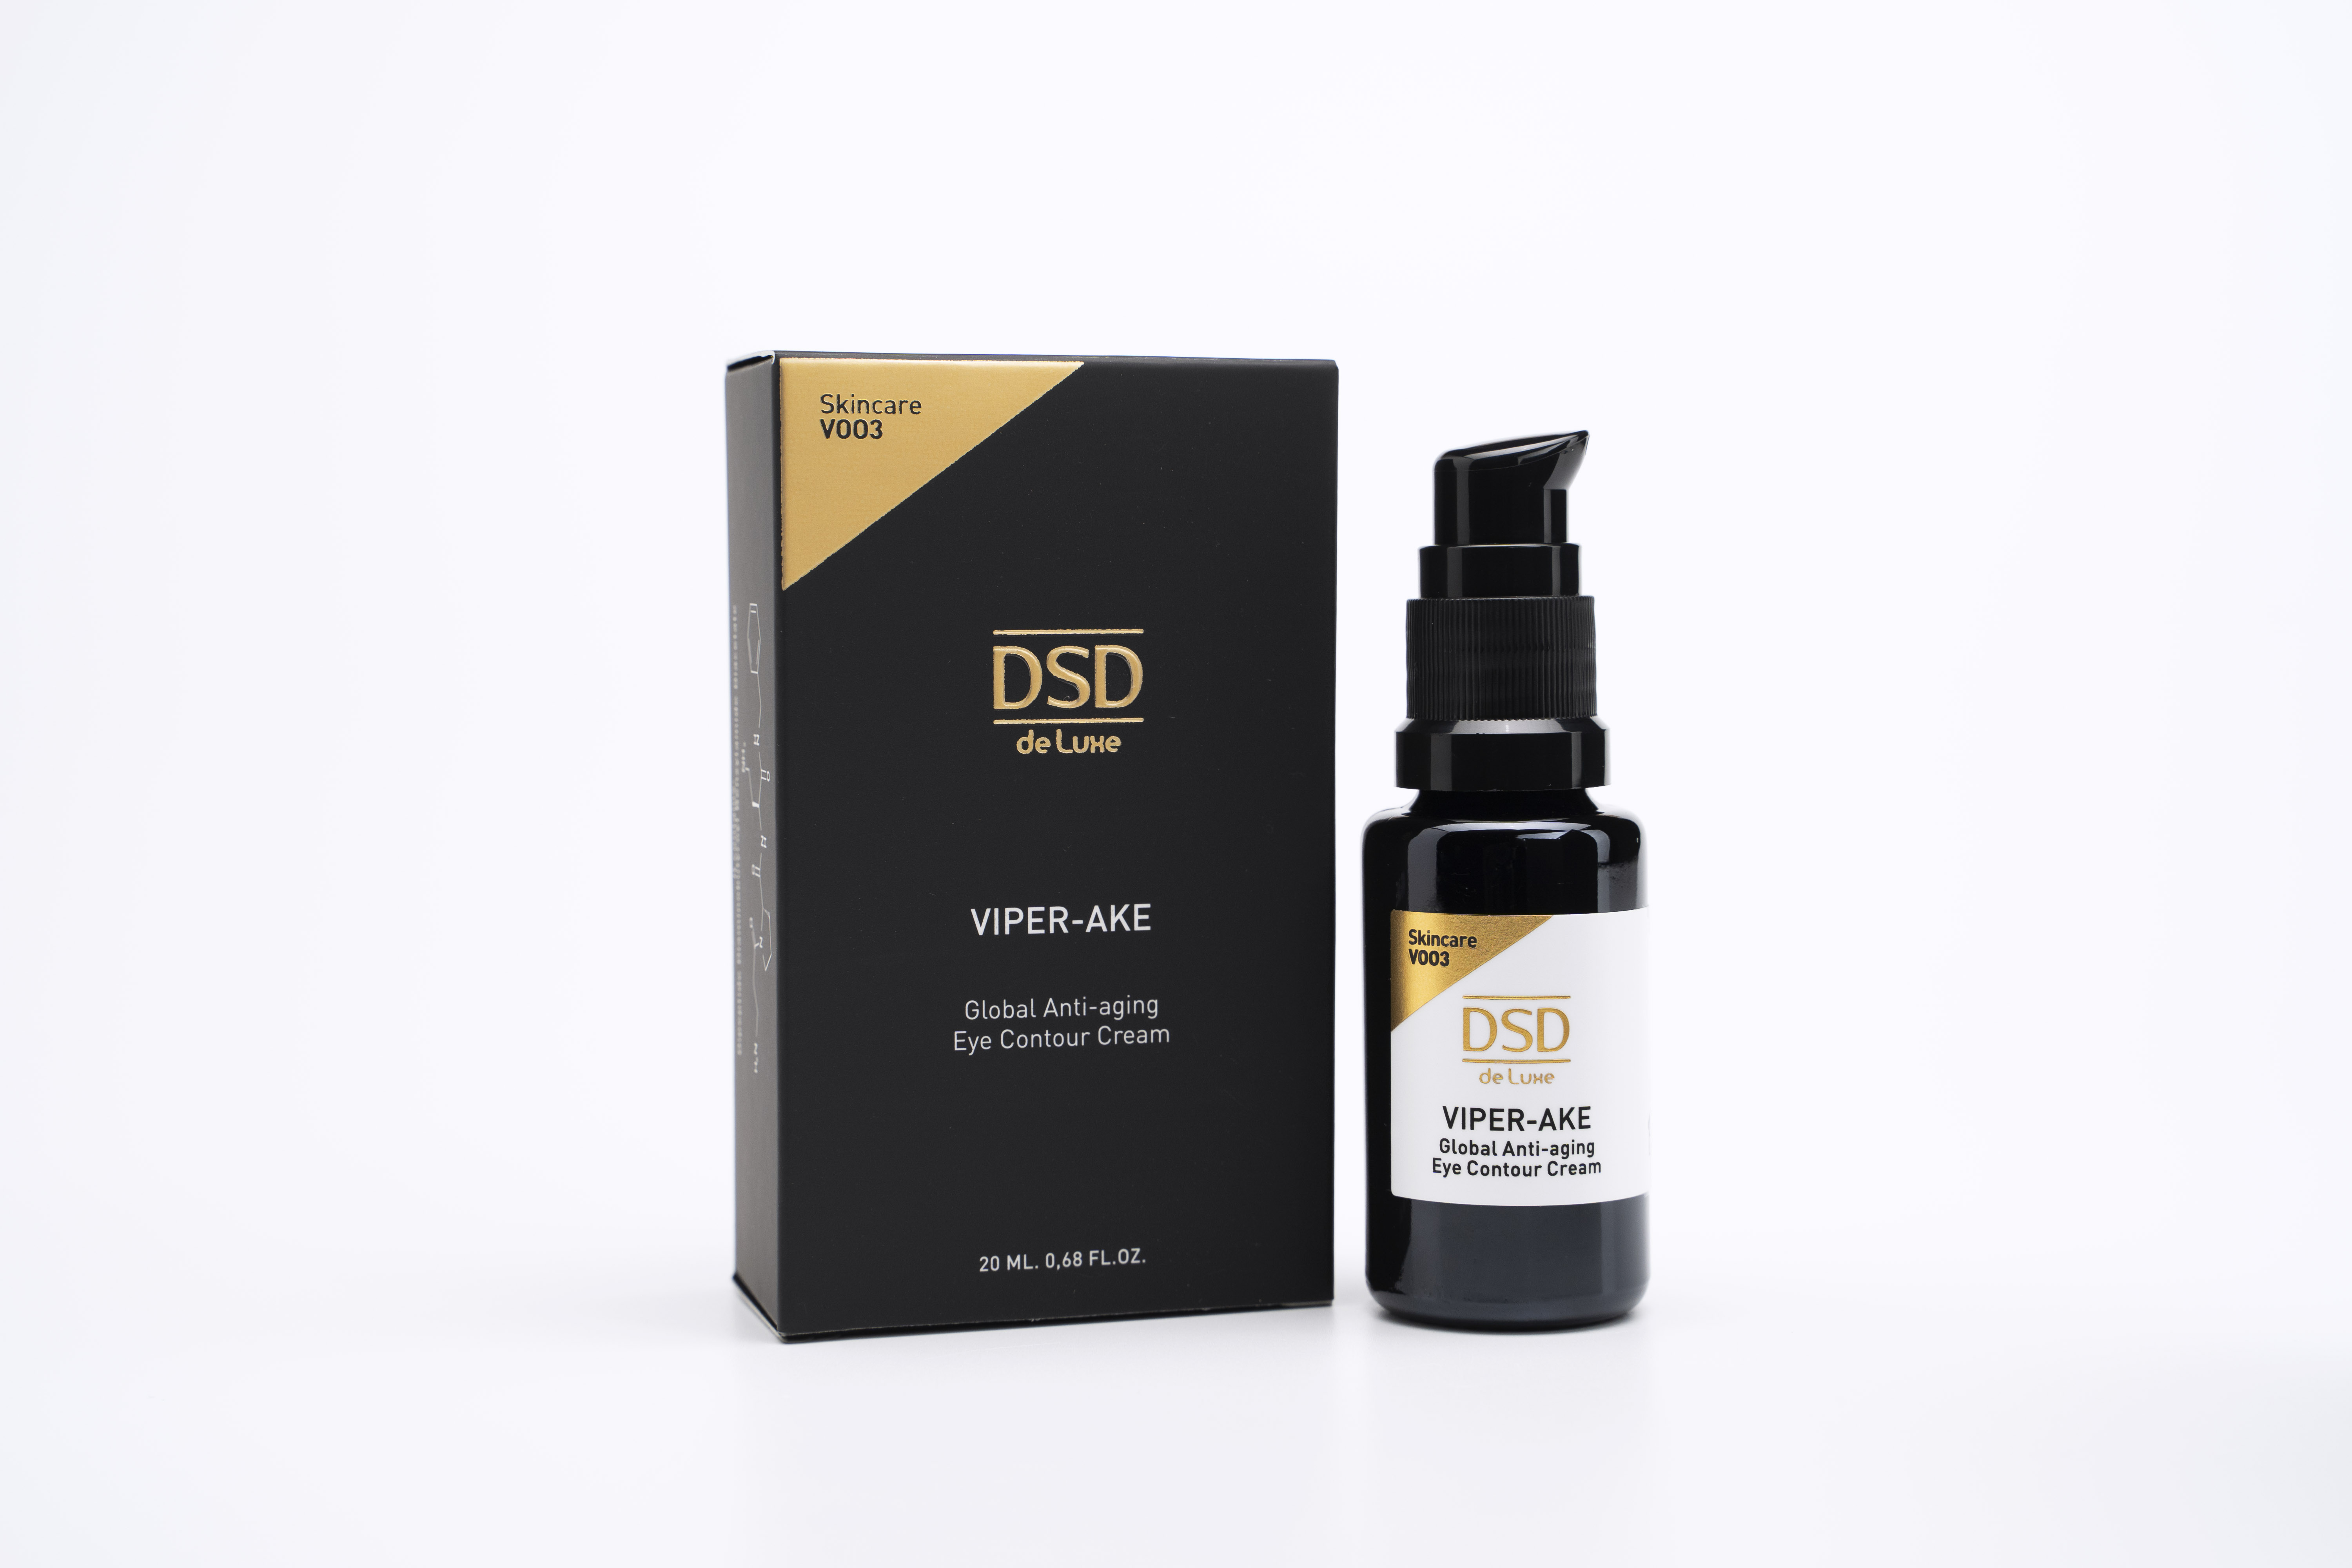 DSD DE LUXE GLOBAL ANTI-AGING EYE CONTOUR CREAM V003